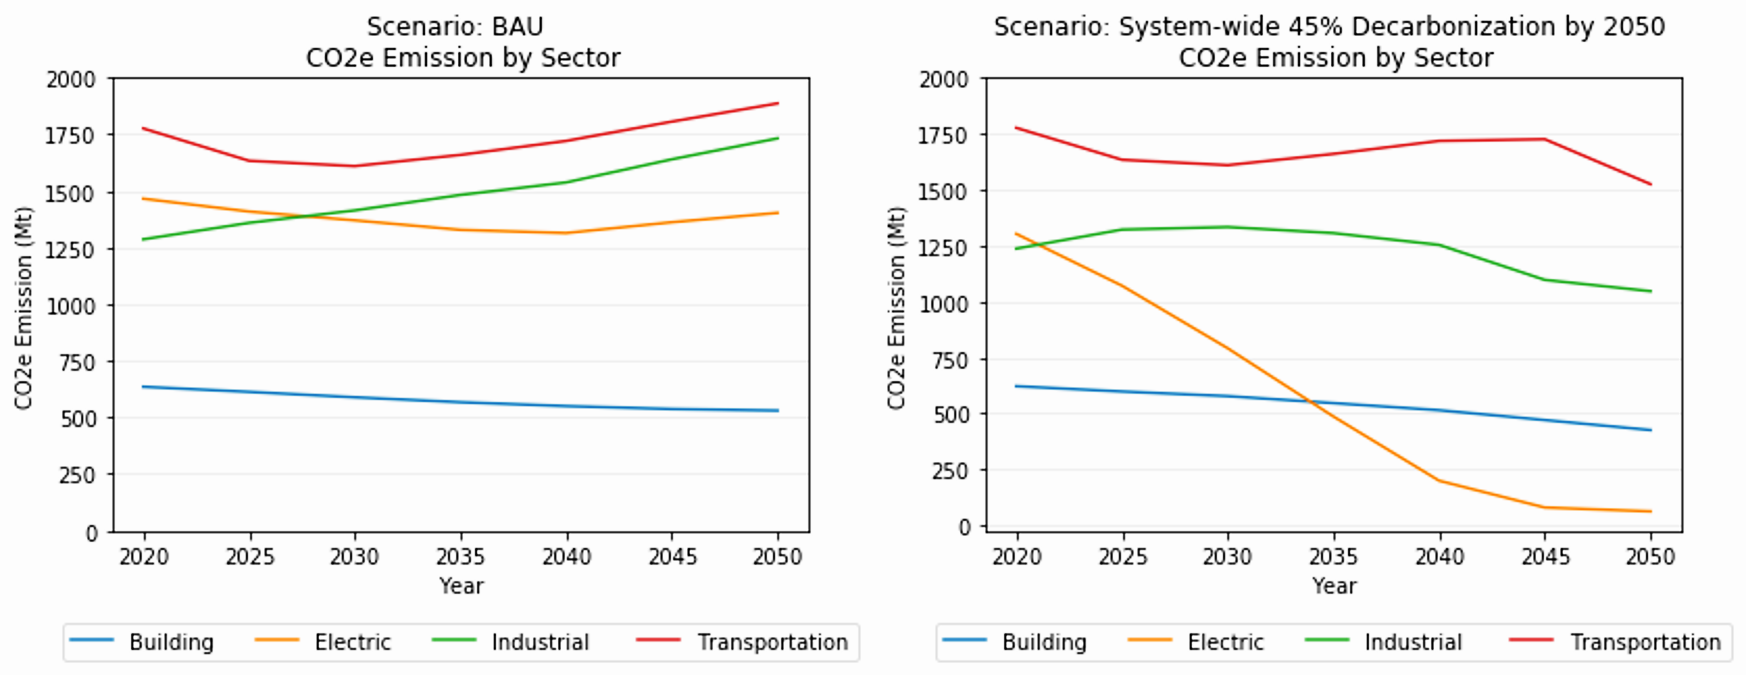 U.S. sectoral GHG emissions in the business-as-usual (BAU) scenario and least-cost pathway for 45% system-wide decarbonization by 2050.